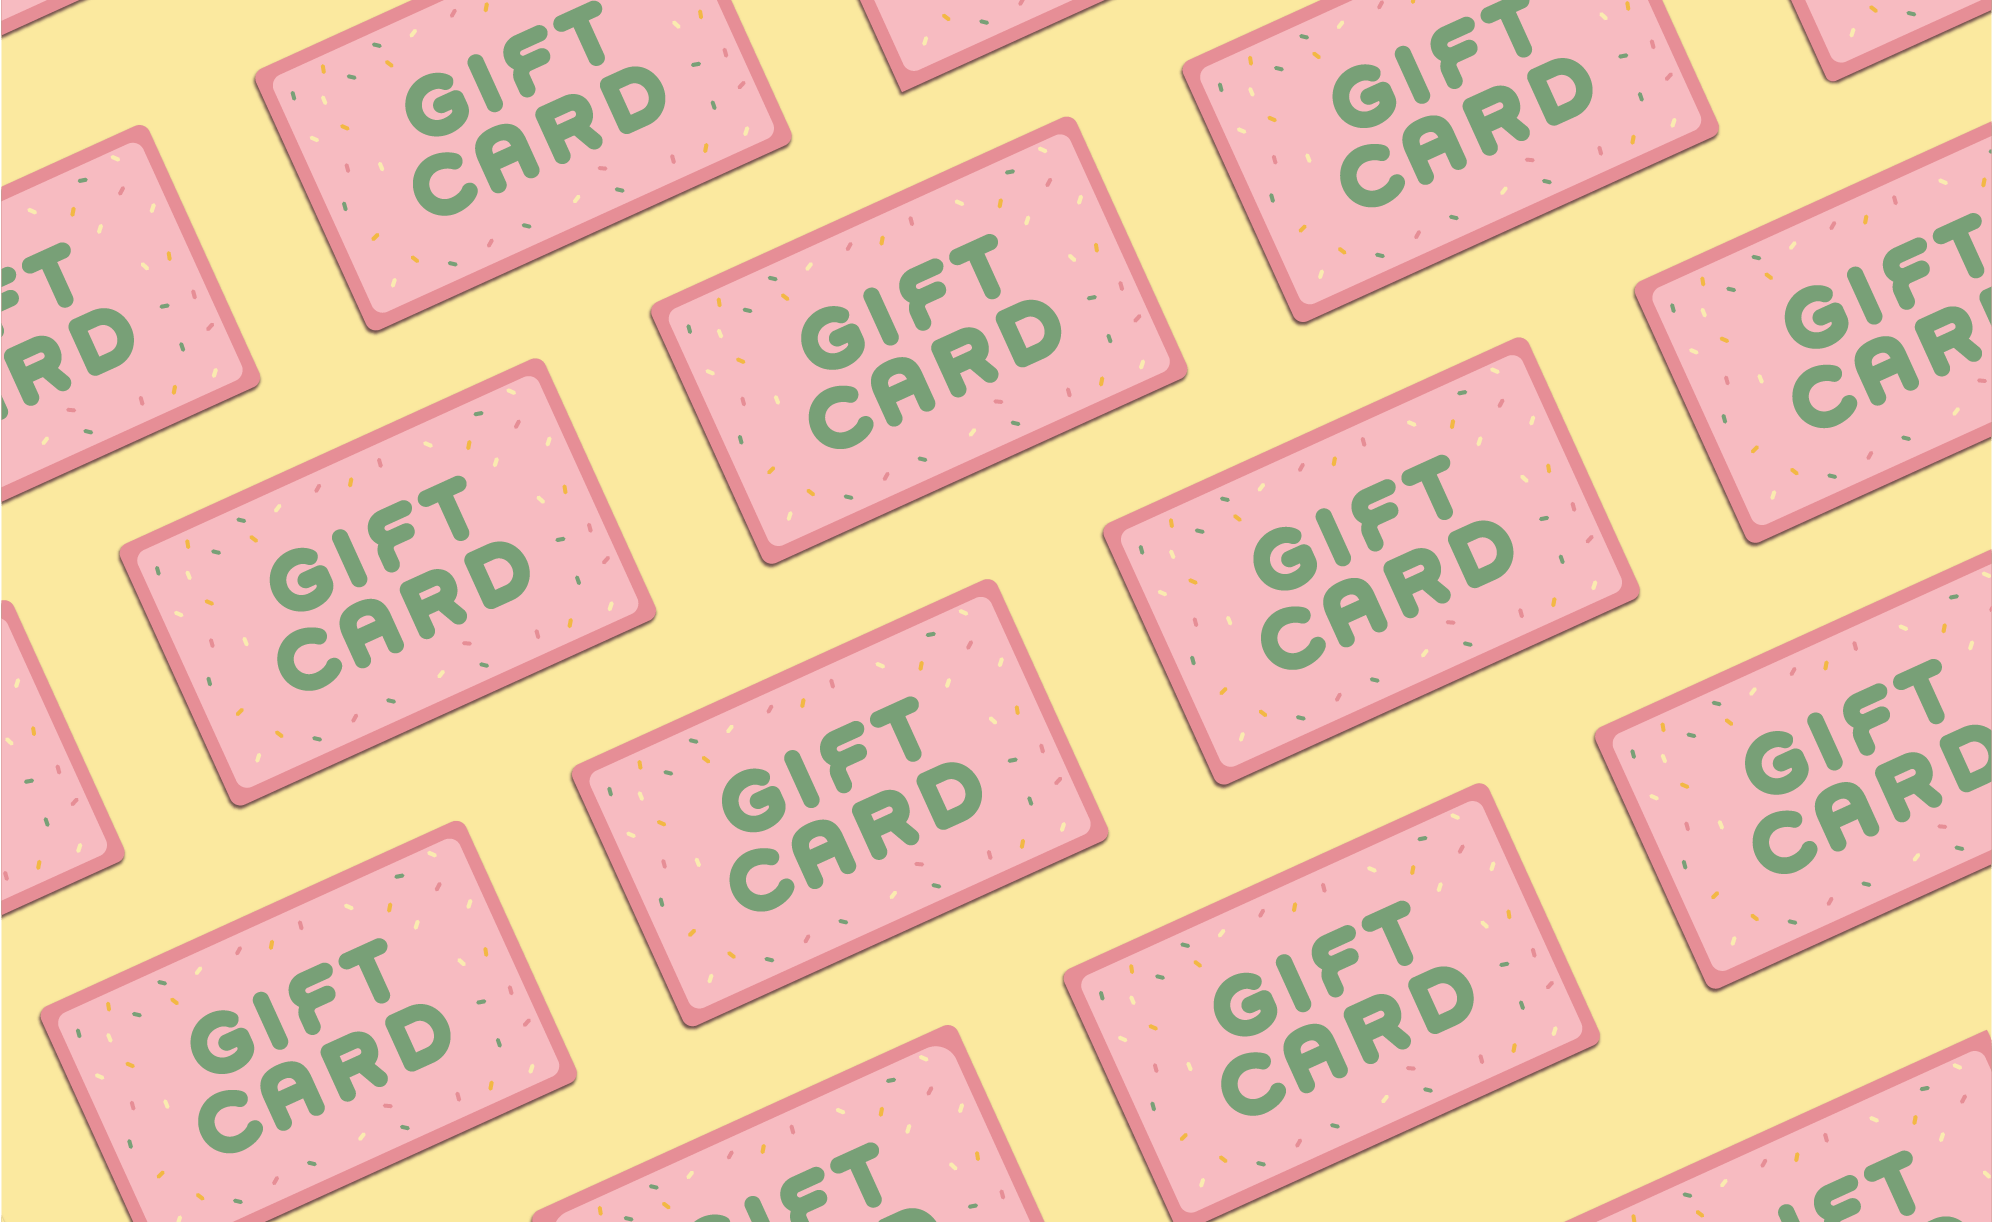 Graphic pattern of pink gift cards with rainbow sprinkles and green text that says